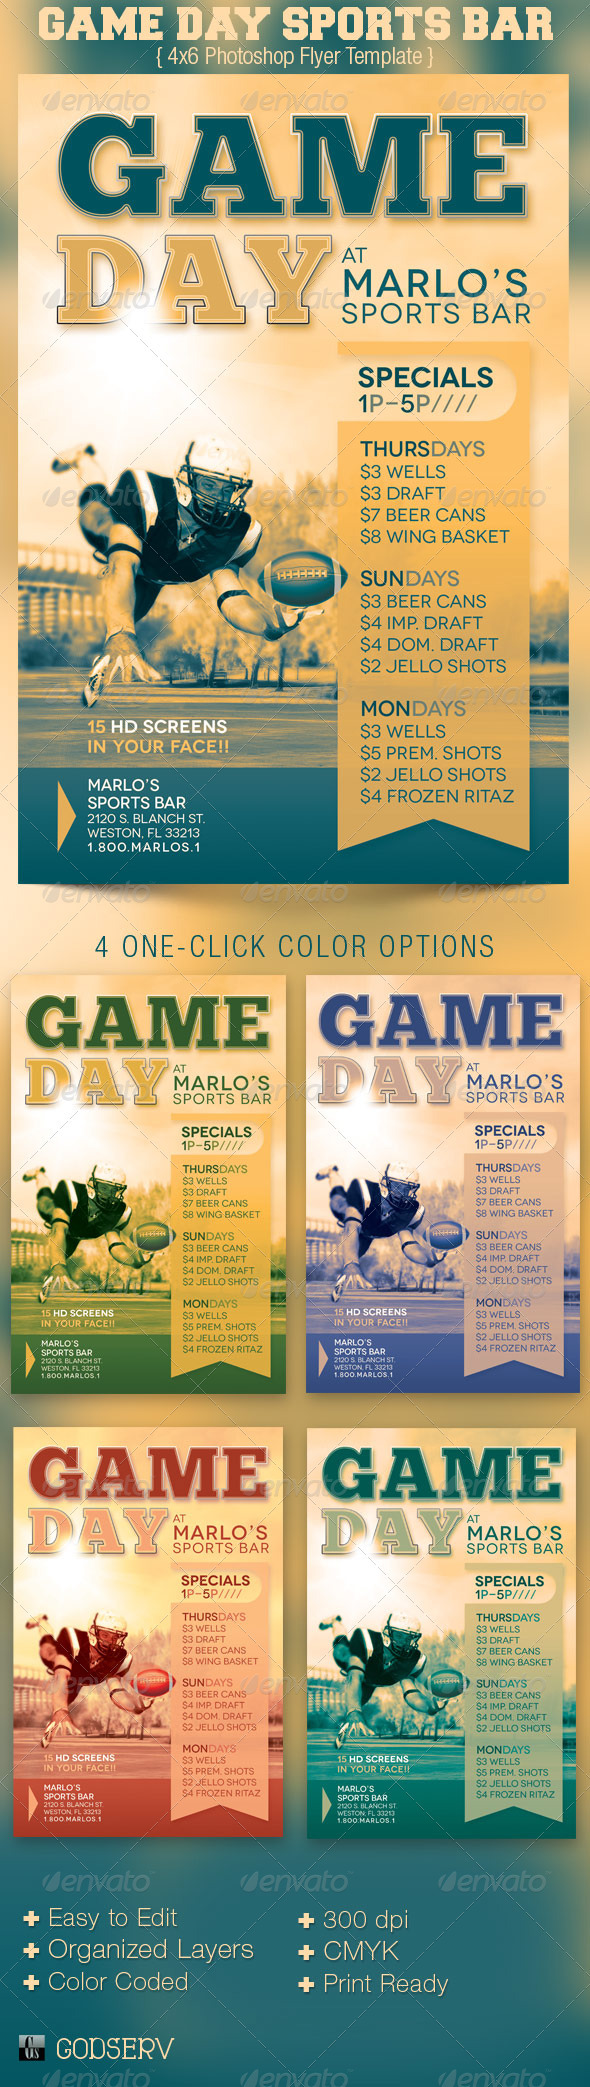 Game Day Sports Bar Flyer Template - Sports Events